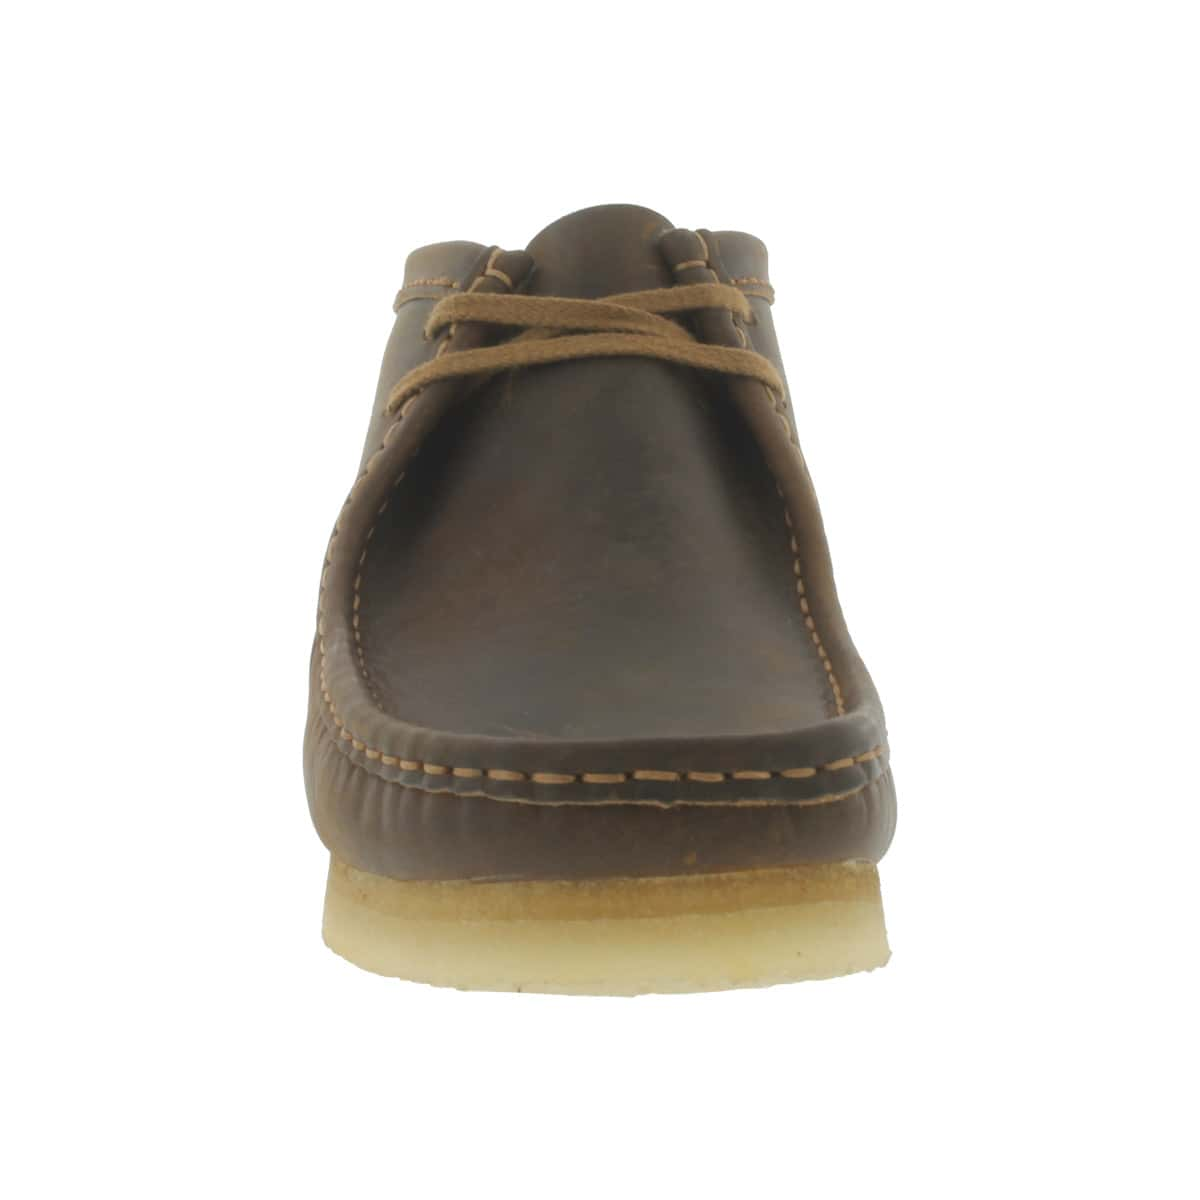 Mns Wallabee beeswax leather casual boot